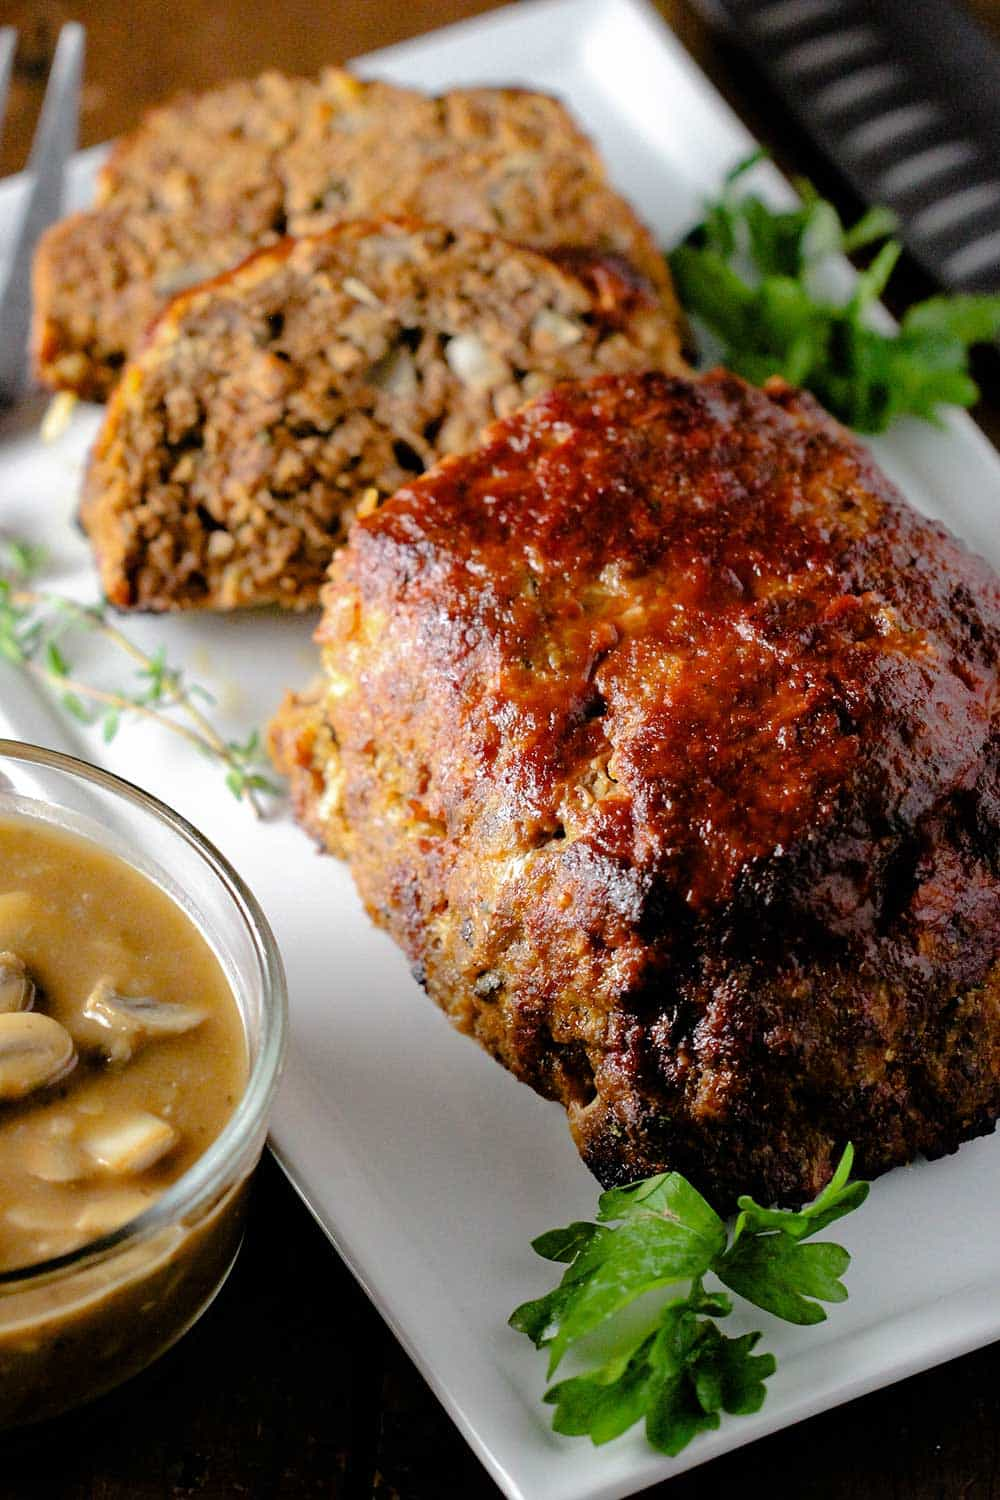 A best-ever meatloaf on a white platter next to a bowl of mushroom gravy.